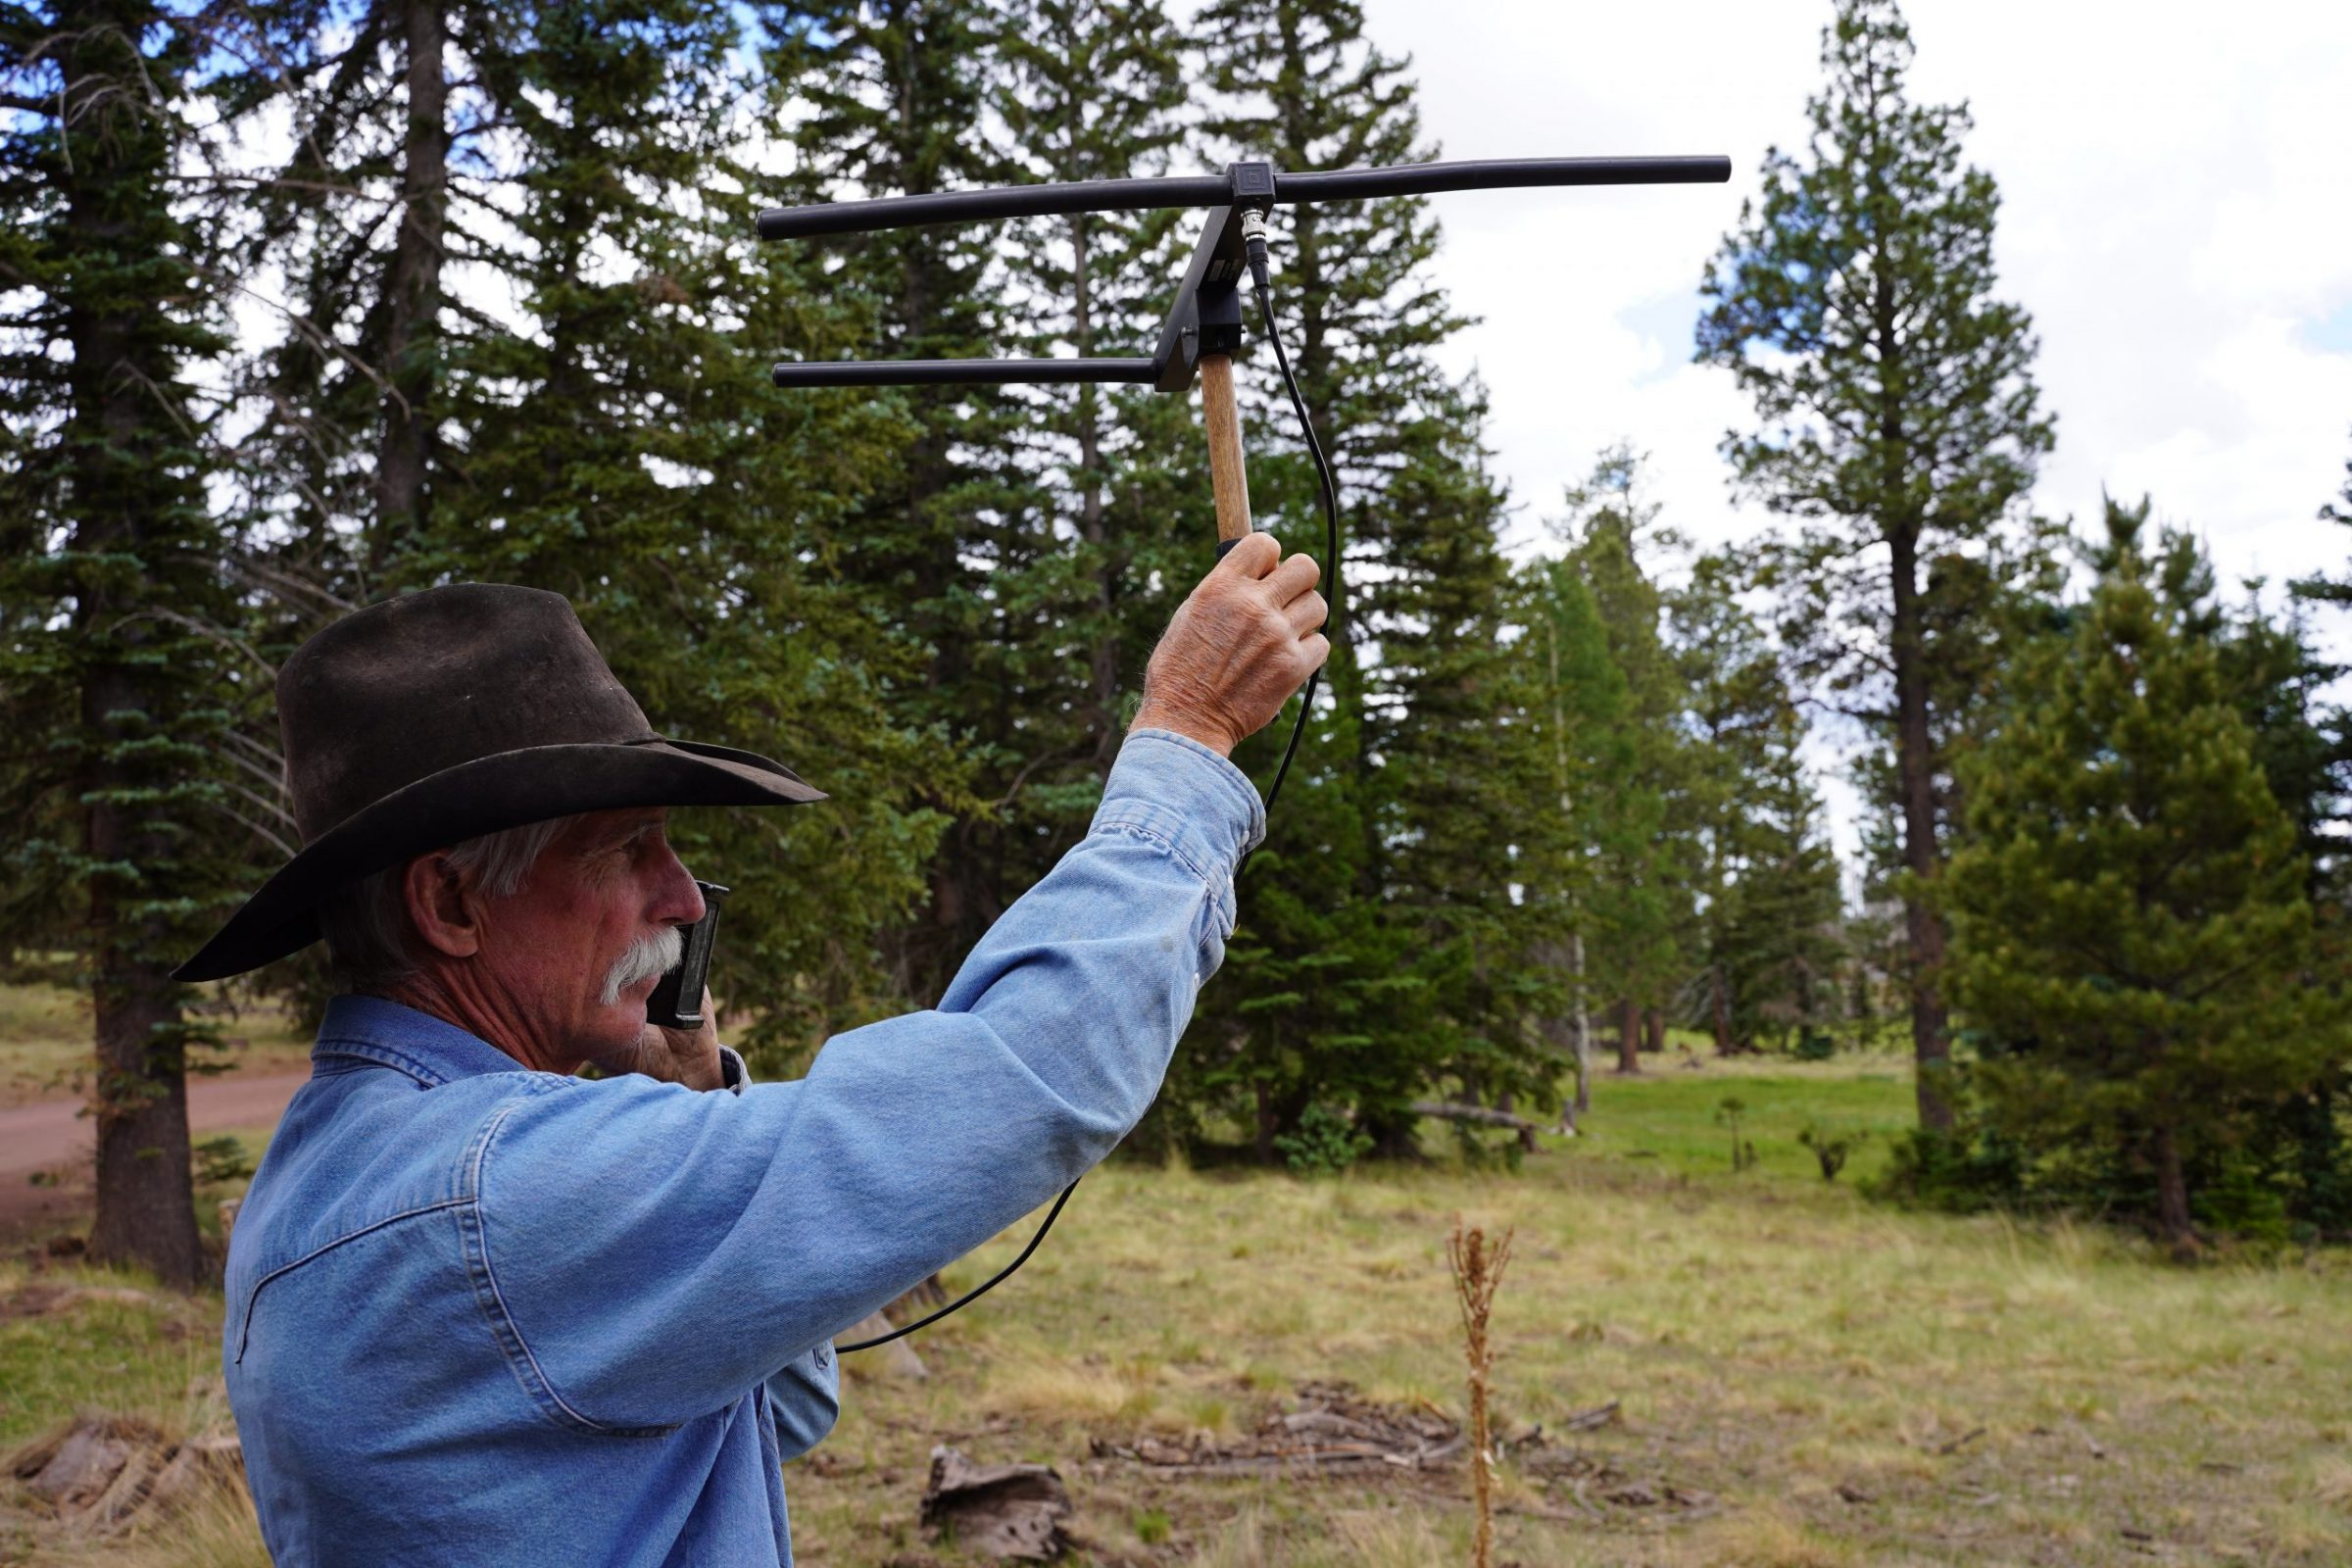 Range Rider Jay Brad Miller raises an antenna near a grazing area in the Apache-Sitgreaves National Forest. The antenna, connected to an electronic receiver, detects signals from wolves outfitted with GPS collars—a new tool that Miller credits with helping him keep cattle away from wolves. Photograph by April Reese